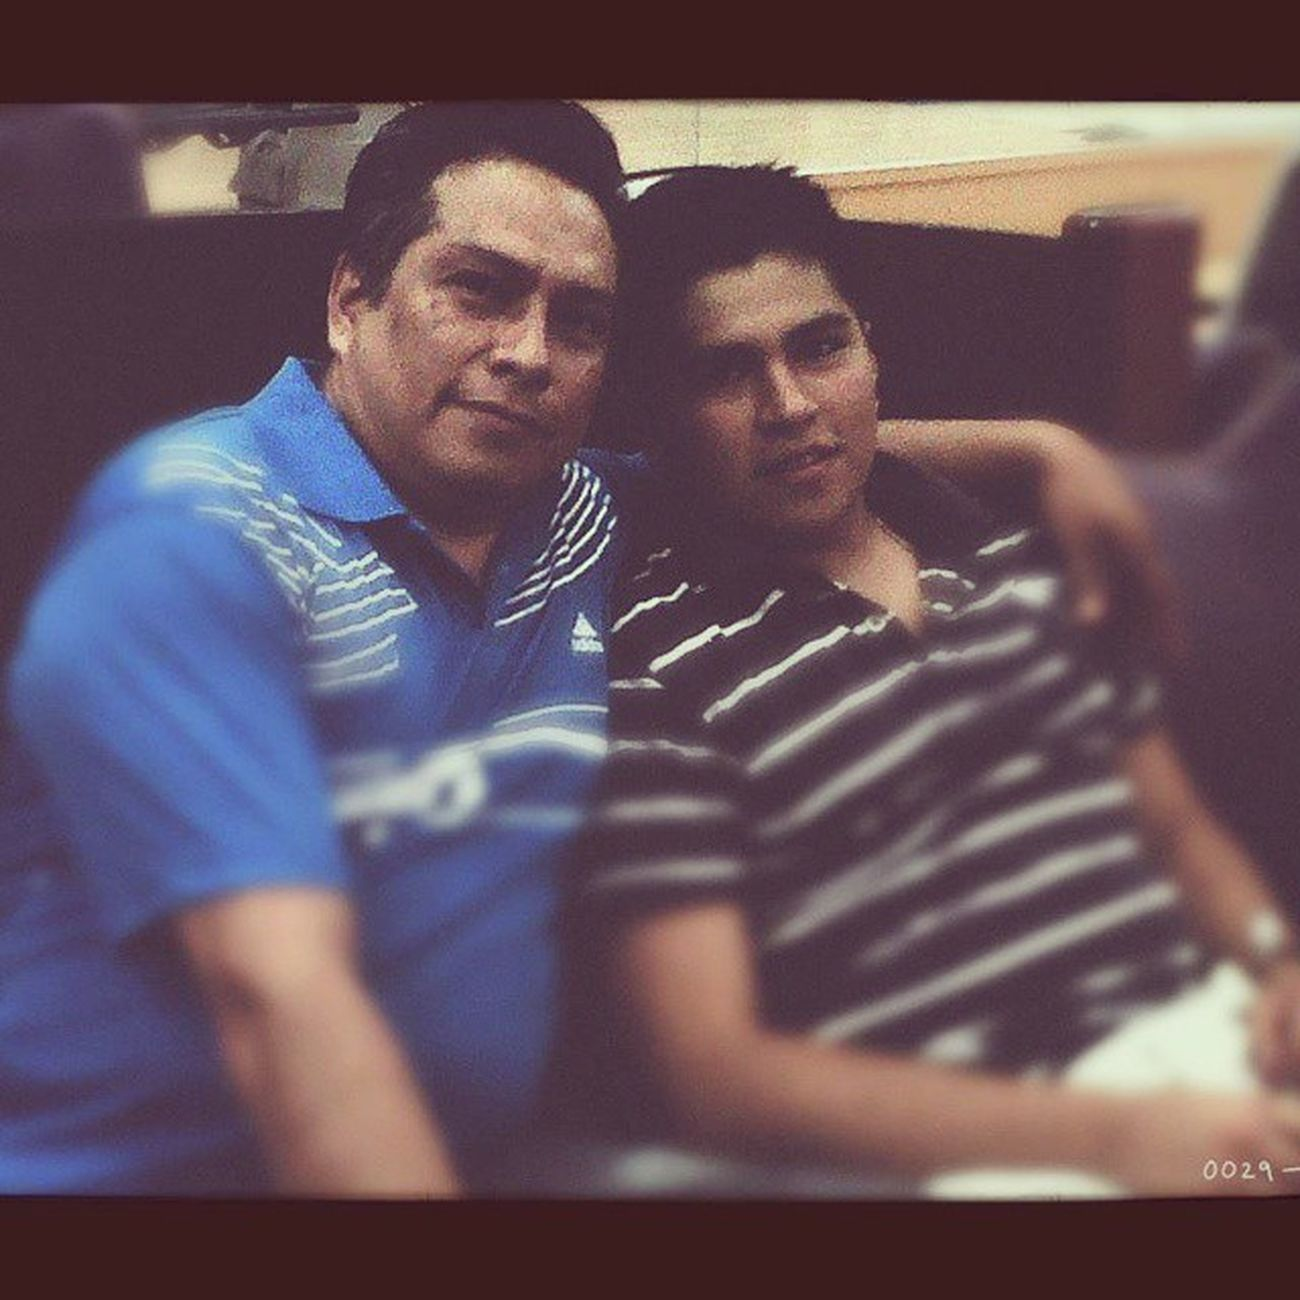 My father and I bowling! Father Boliche Cumpleaños Recorcholis!